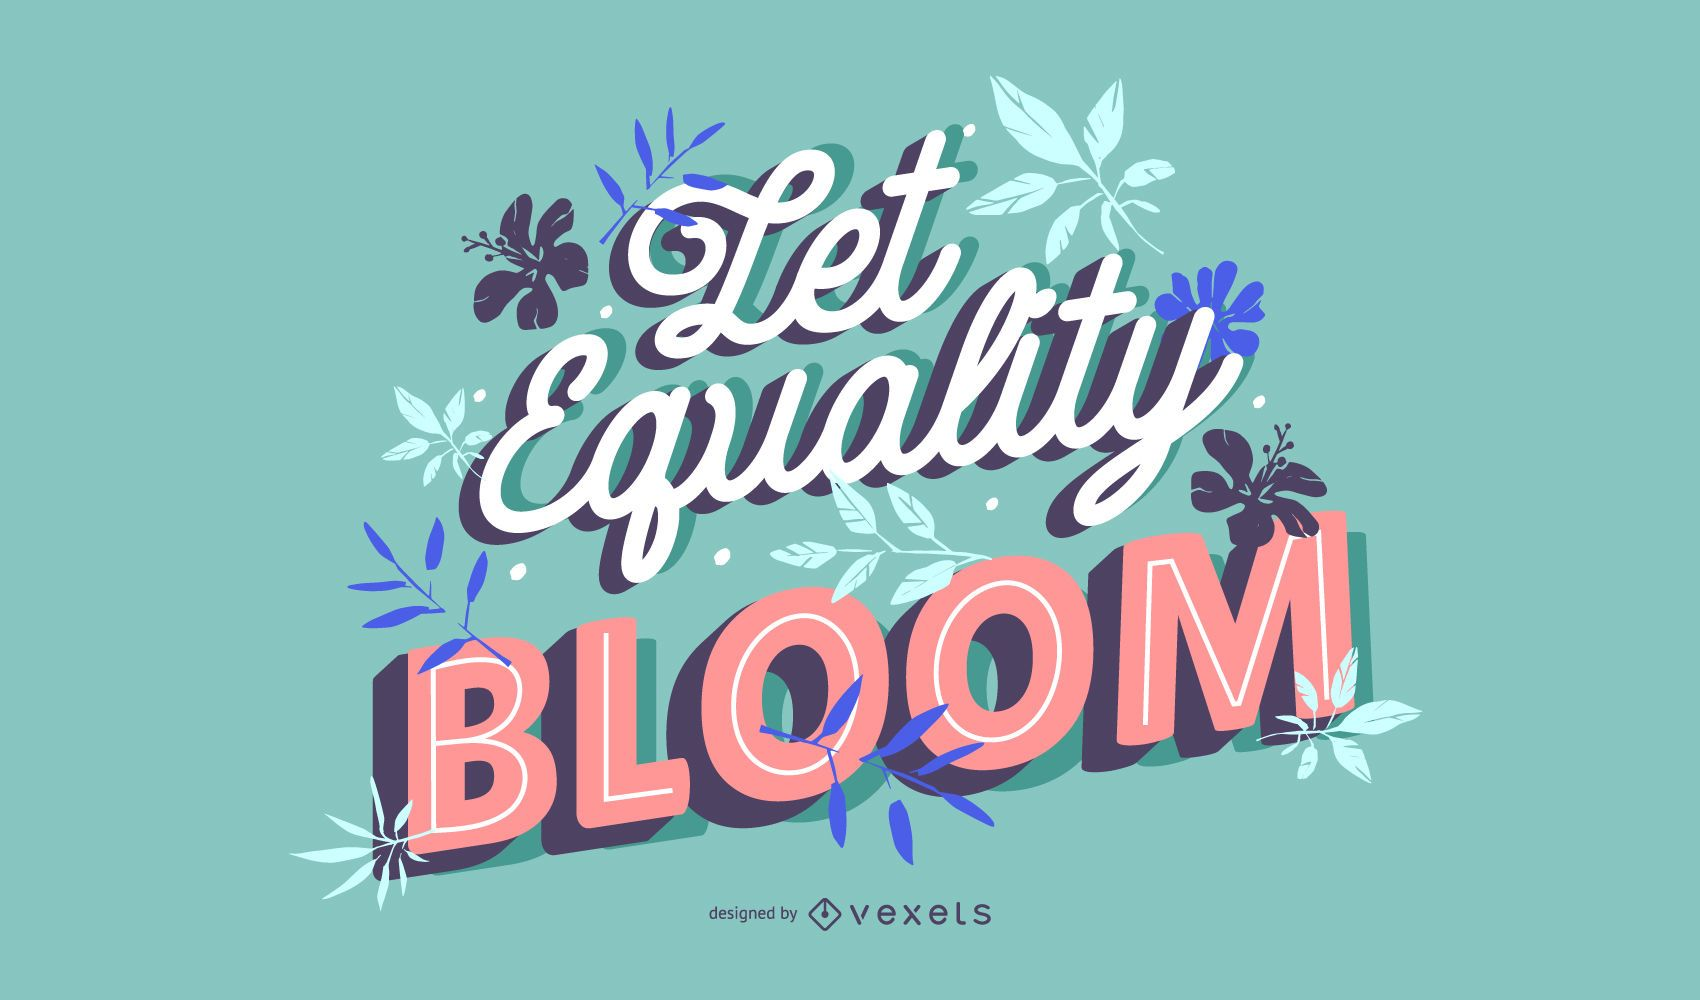 Equality bloom Women's day lettering